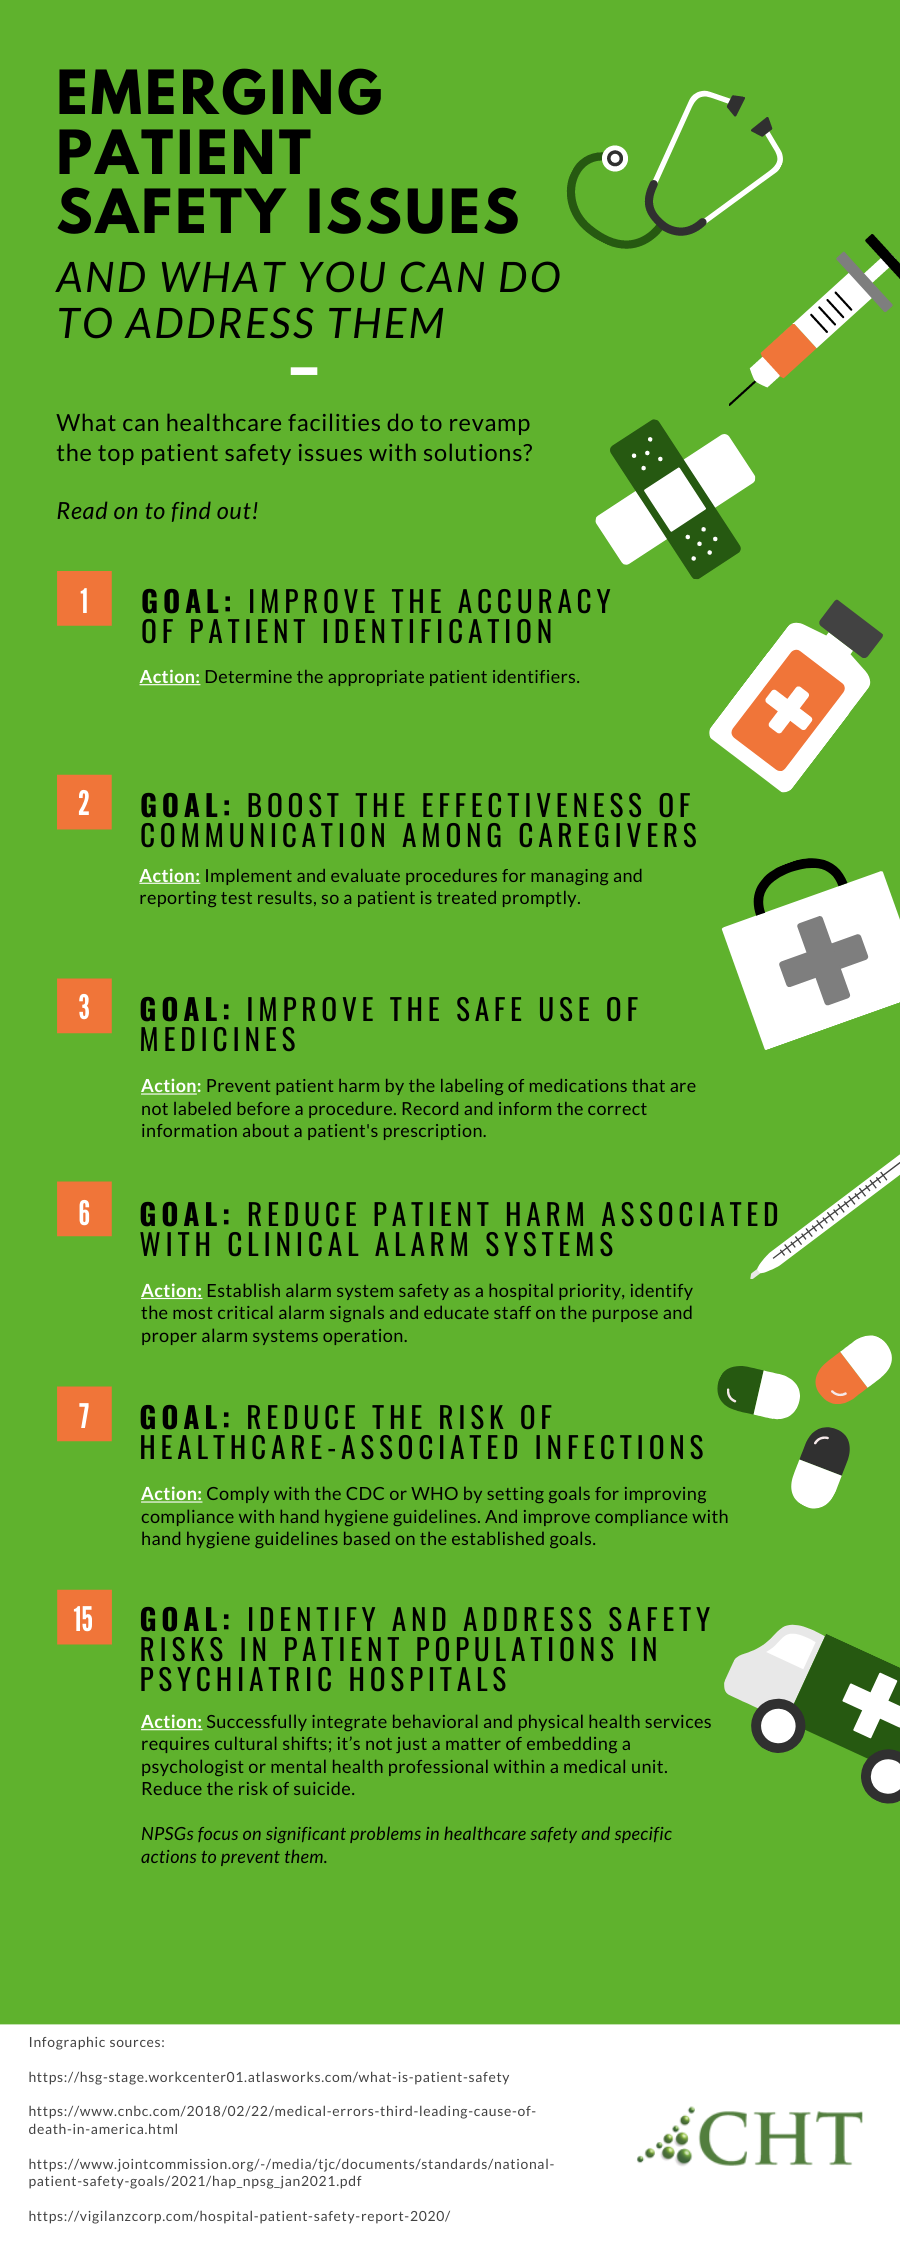 Emerging Patient Safety Issues and What You Can Do To Address Them